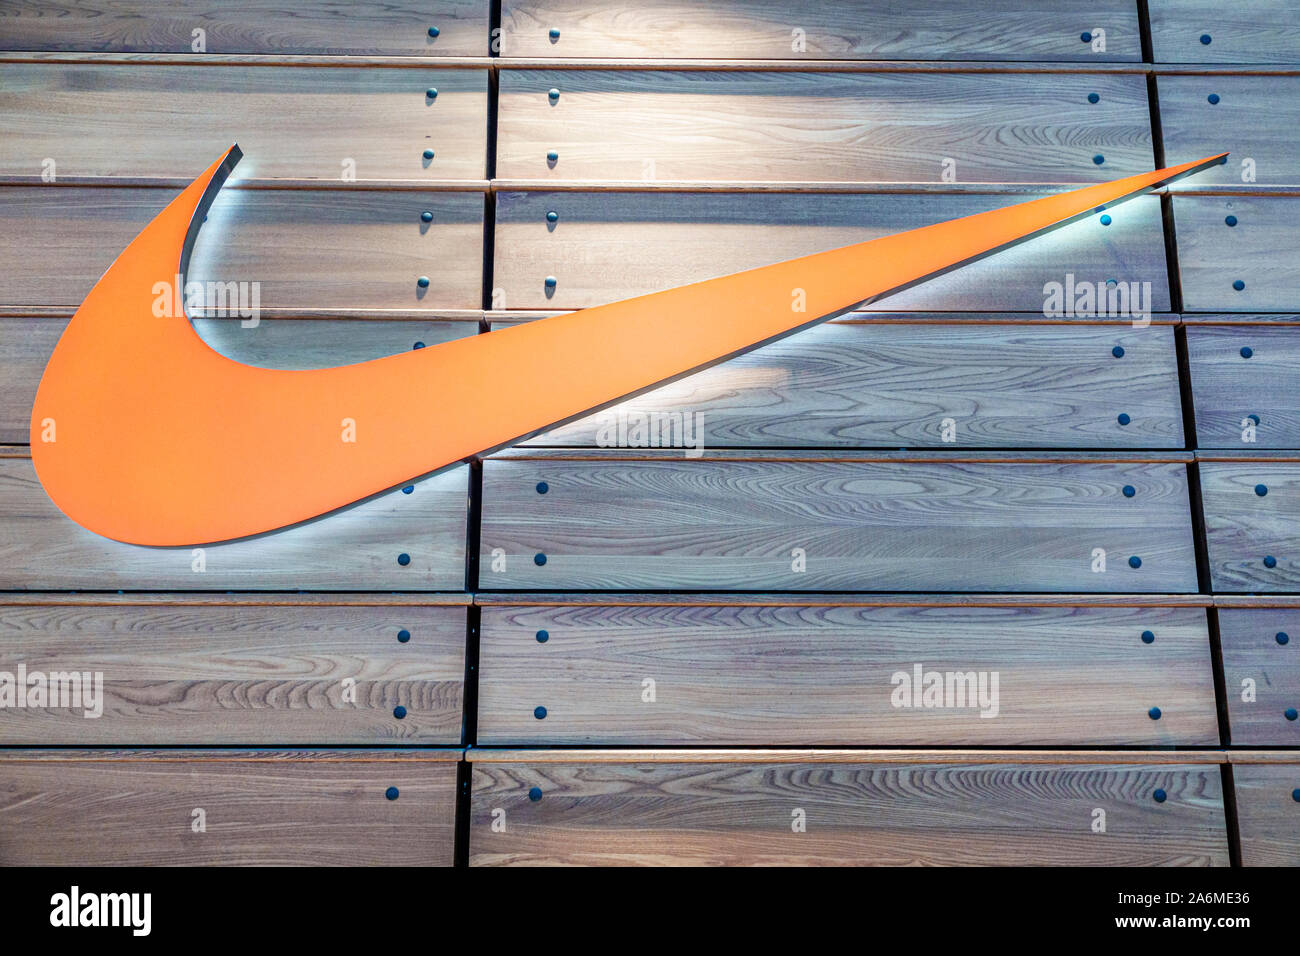 Loco En todo el mundo golf  Spain Barcelona Catalonia Catalunya Les Corts L'illa Diagonal shopping mall  Nike store sporting athletic footwear clothes apparel window display Swoos  Stock Photo - Alamy